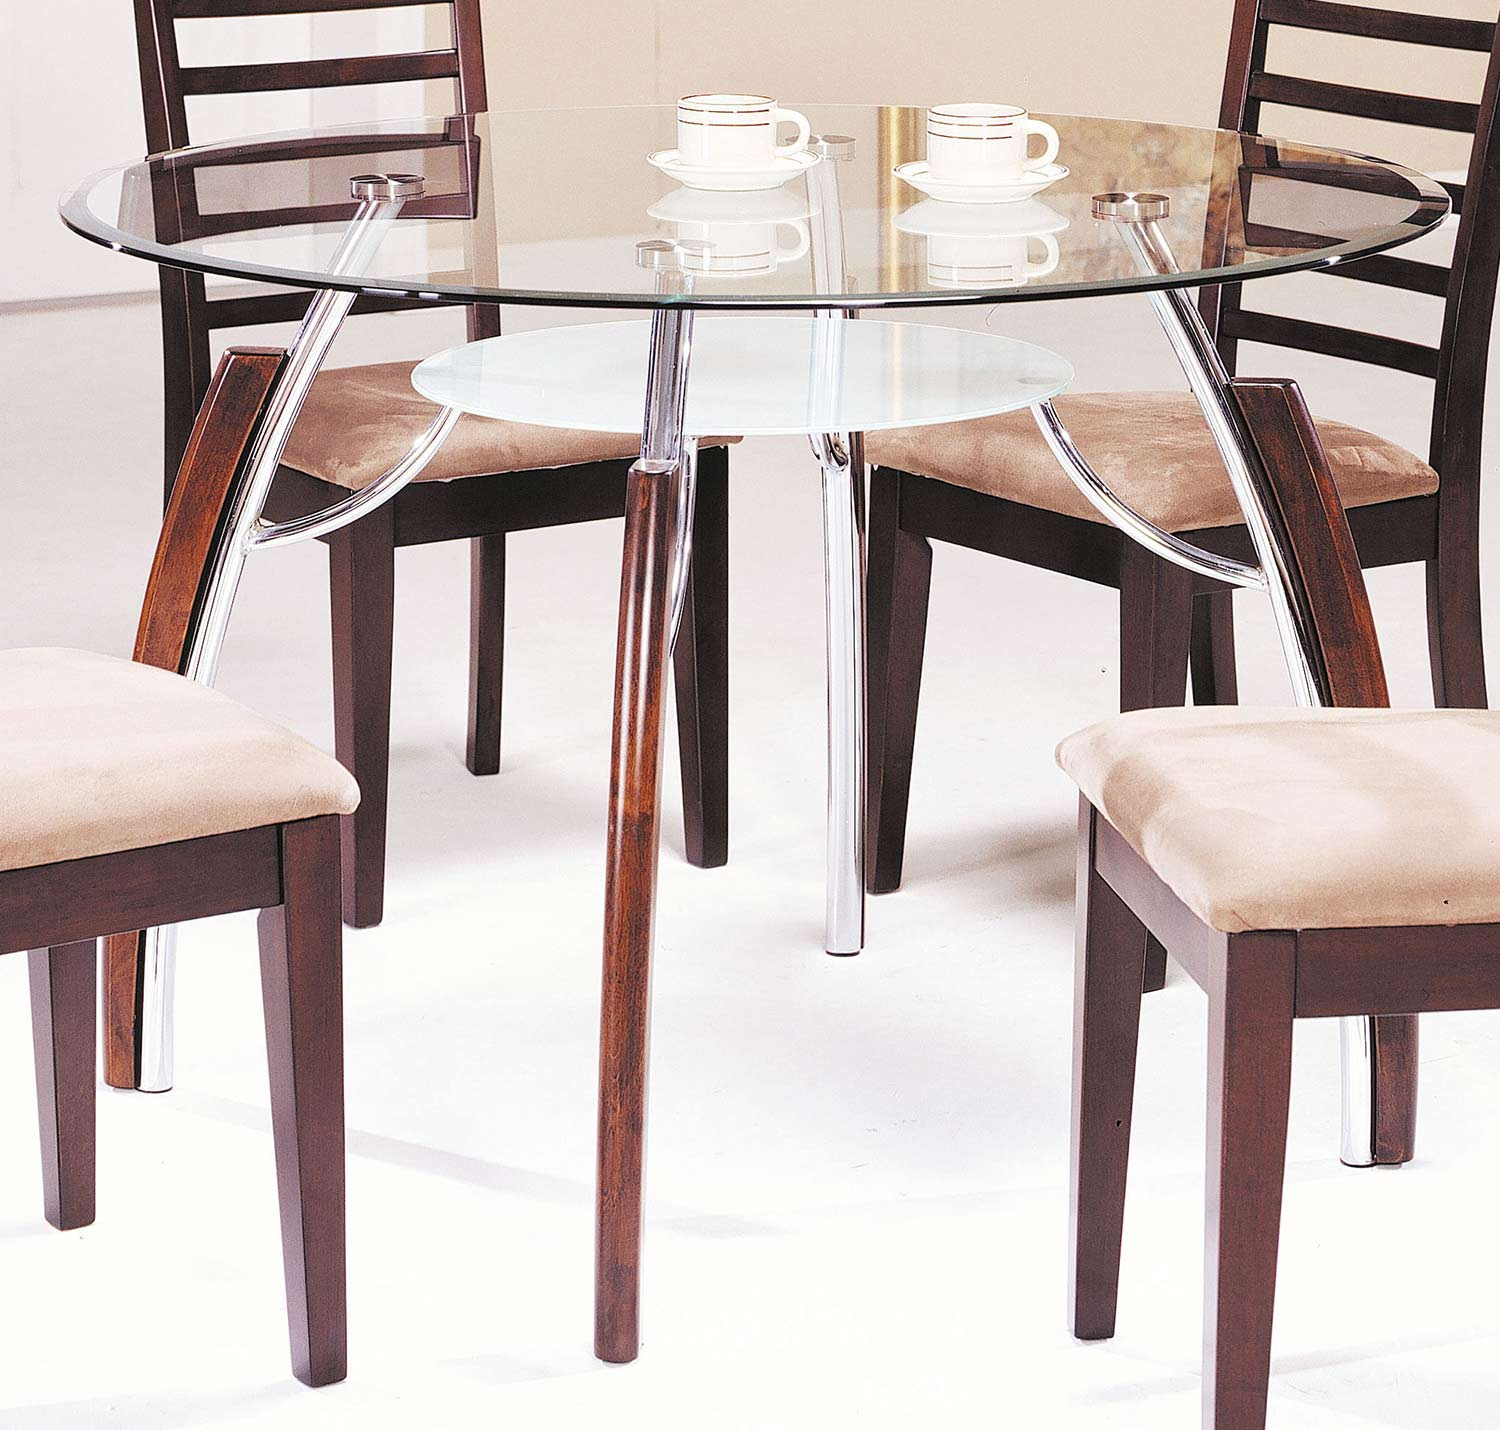 Acme Martini Dining Table - Brown Cherry/Chrome